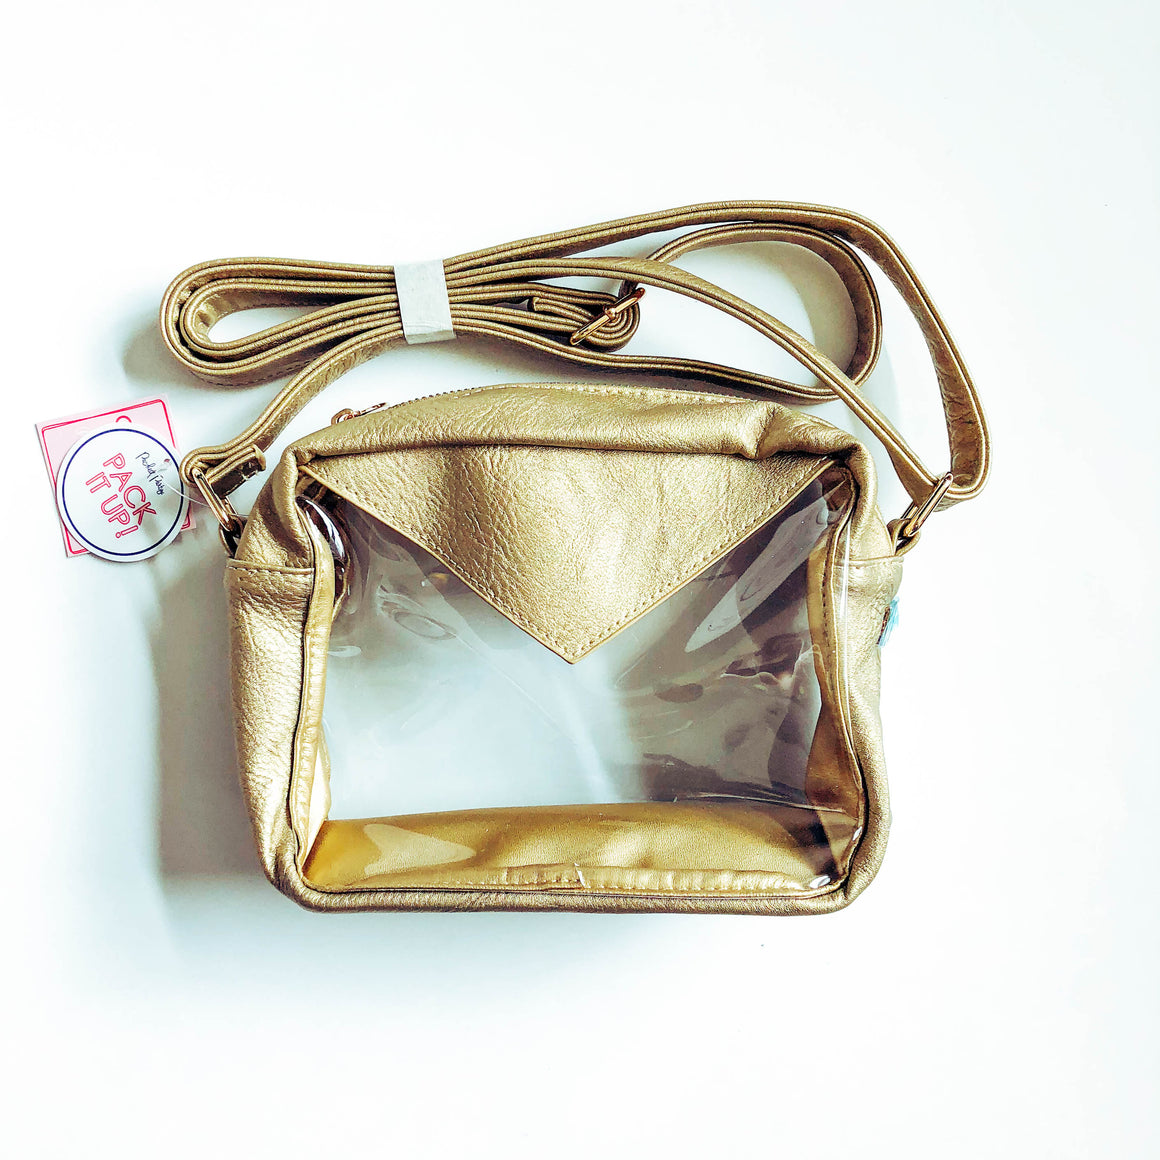 Stadium Crossbody Bag - Gold